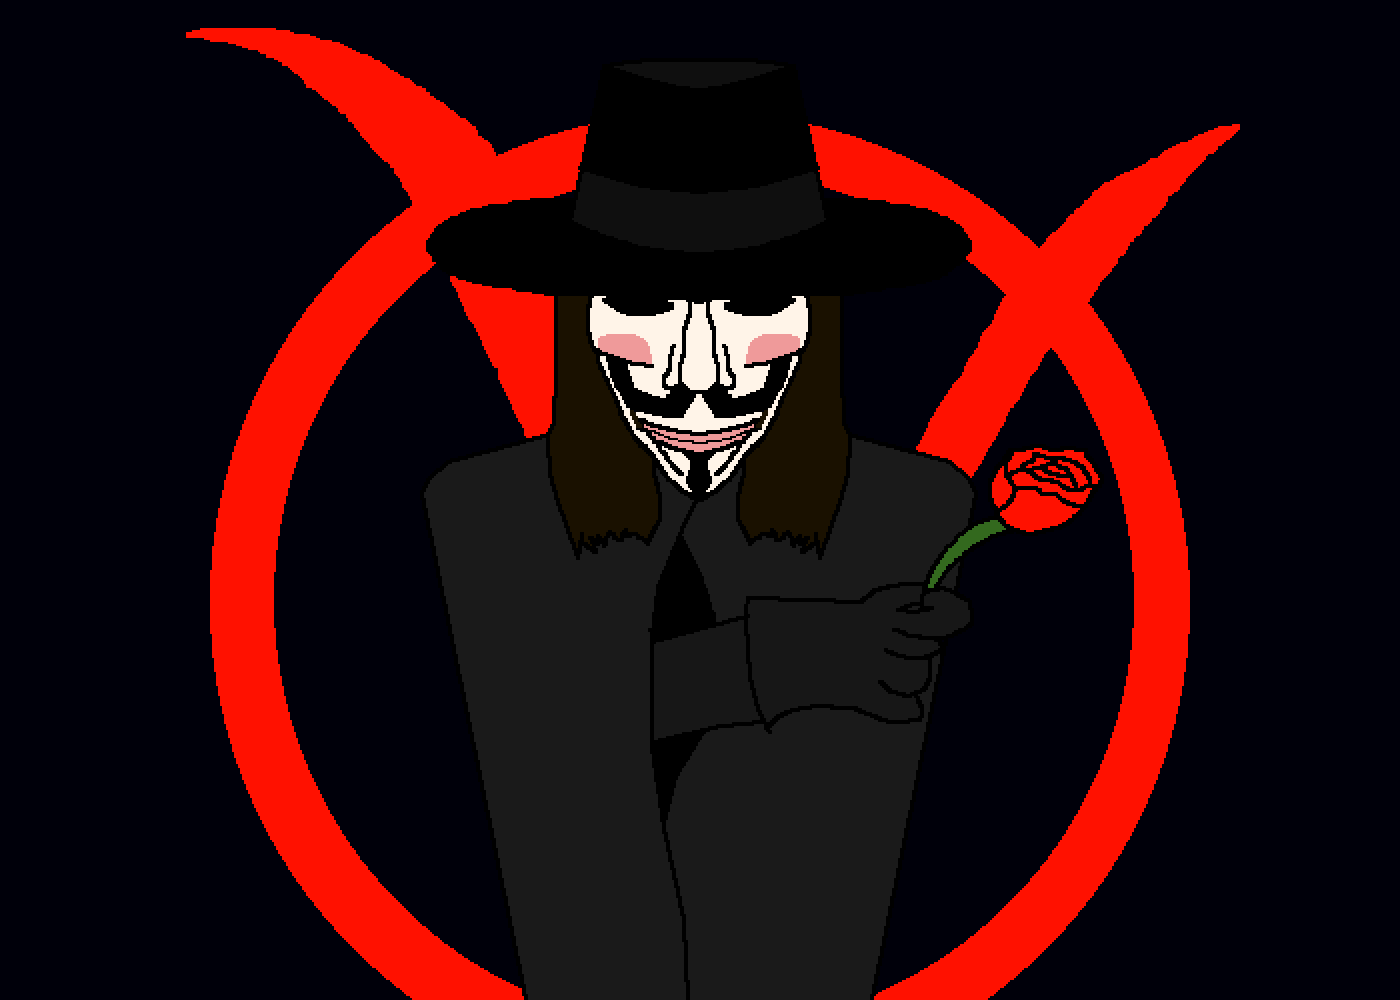 V for Vendetta by Gaming04